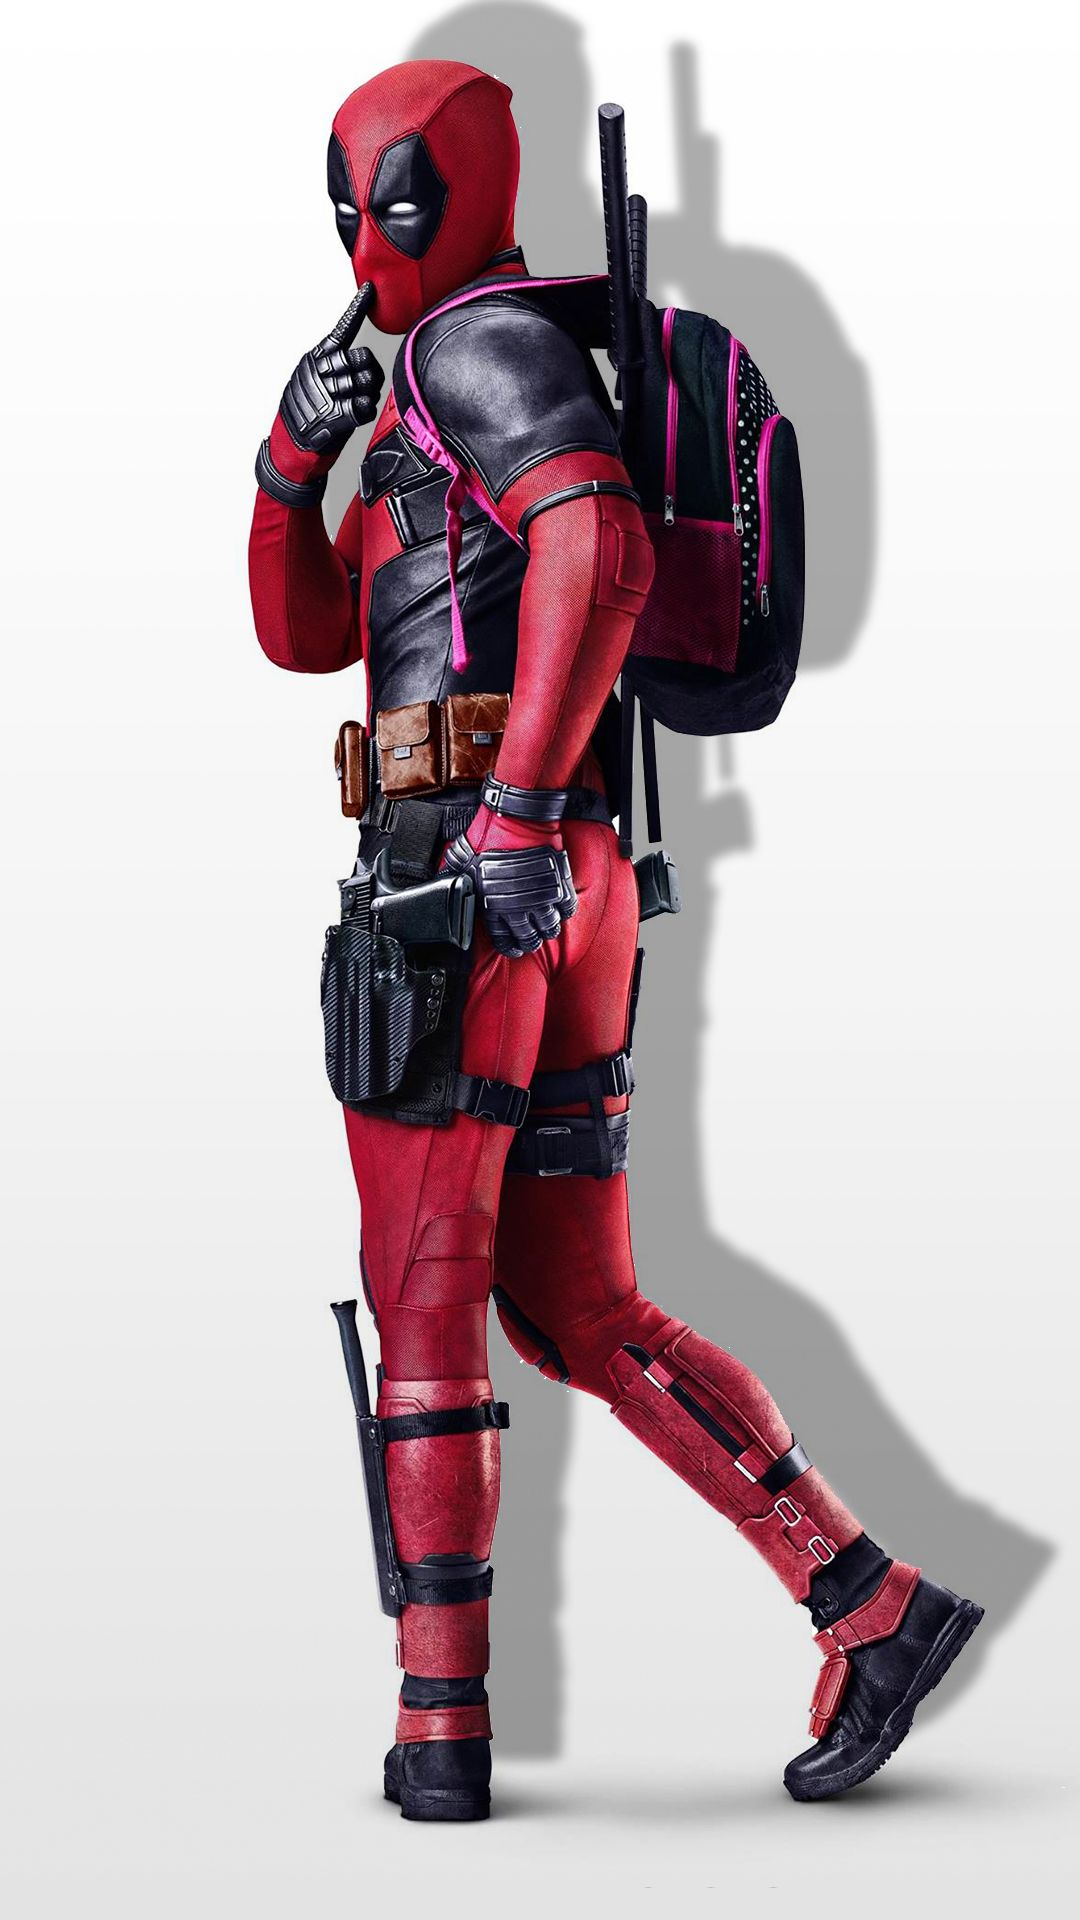 Check The Best Collection Of Hd Deadpool Iphone Backgrounds For Desktop Laptop Tablet And Mobile Proximos Filmes Da Marvel Super Heroi Quadrinhos Do Deadpool Deadpool hd wallpaper mobile